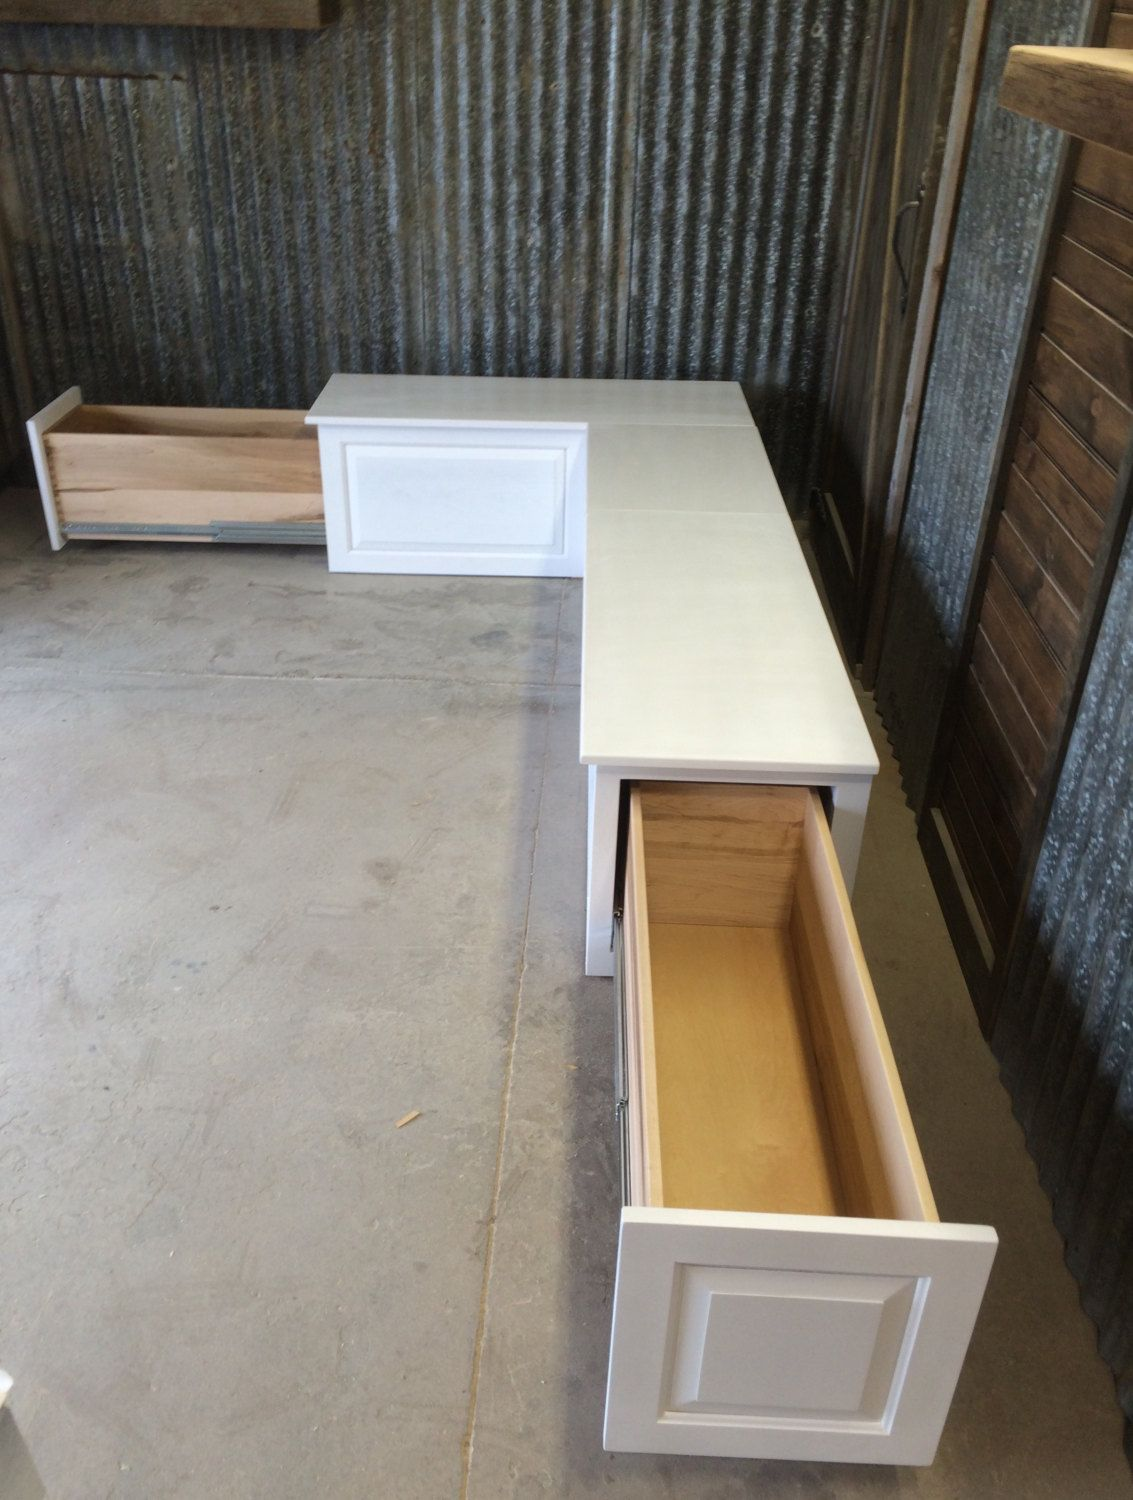 Dining Table With Shelf Underneath Banquette Corner Bench Seat With Storage Drawers